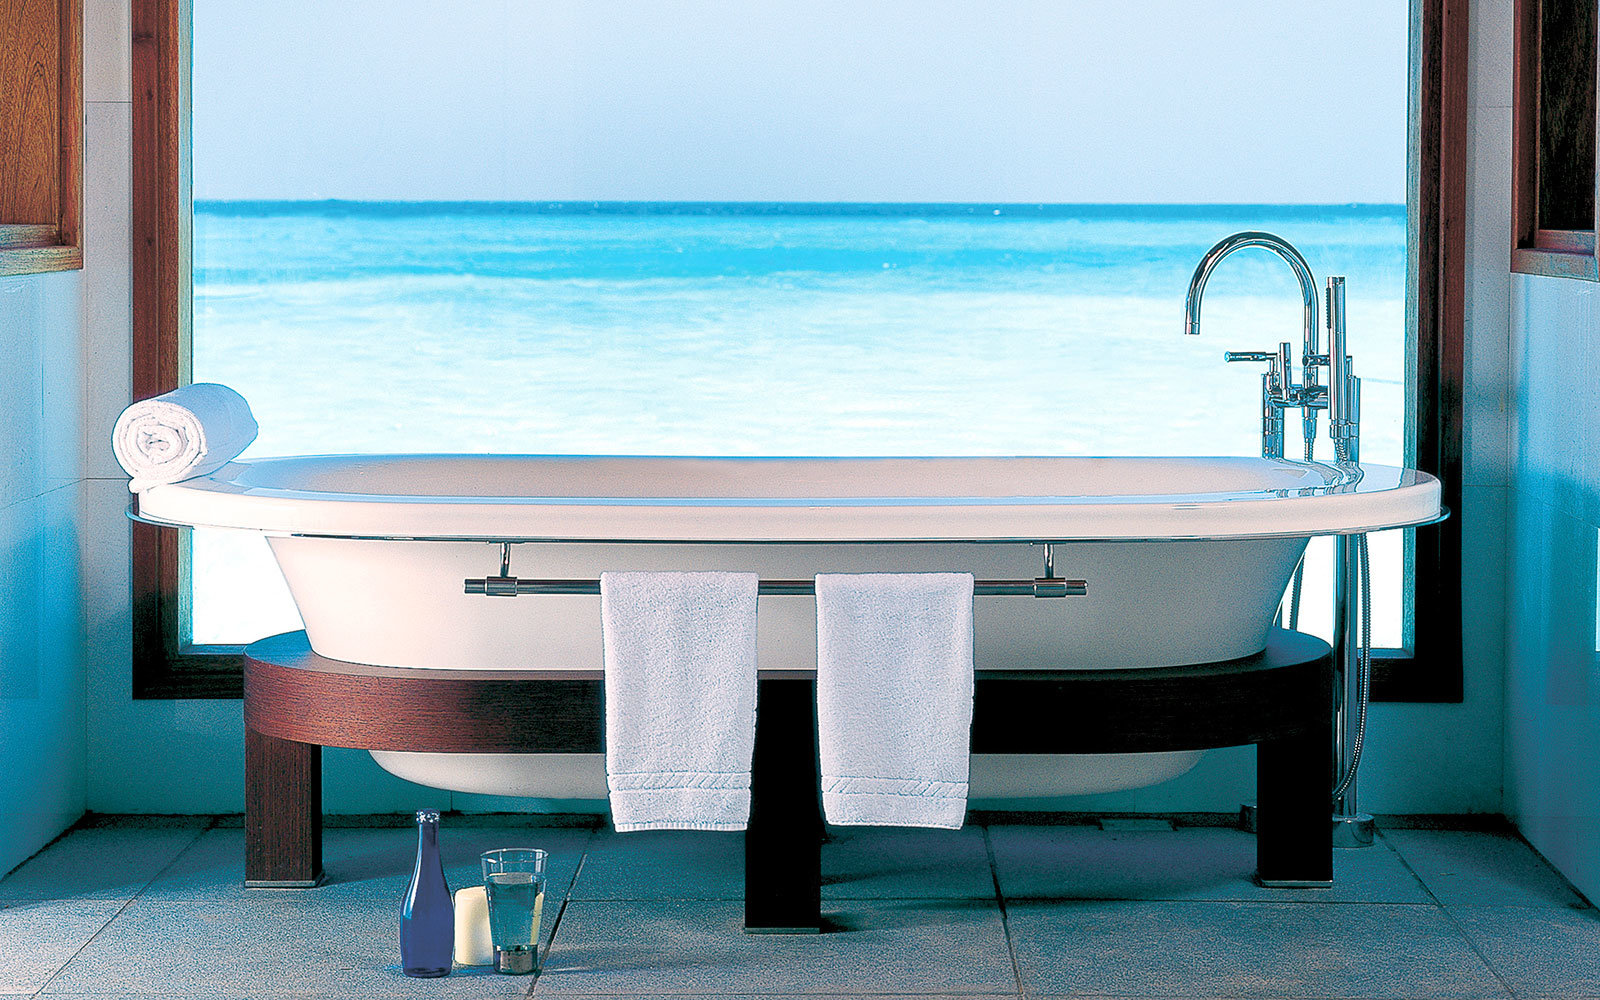 19 Bathtubs Around the World With Epic Views | Travel + Leisure